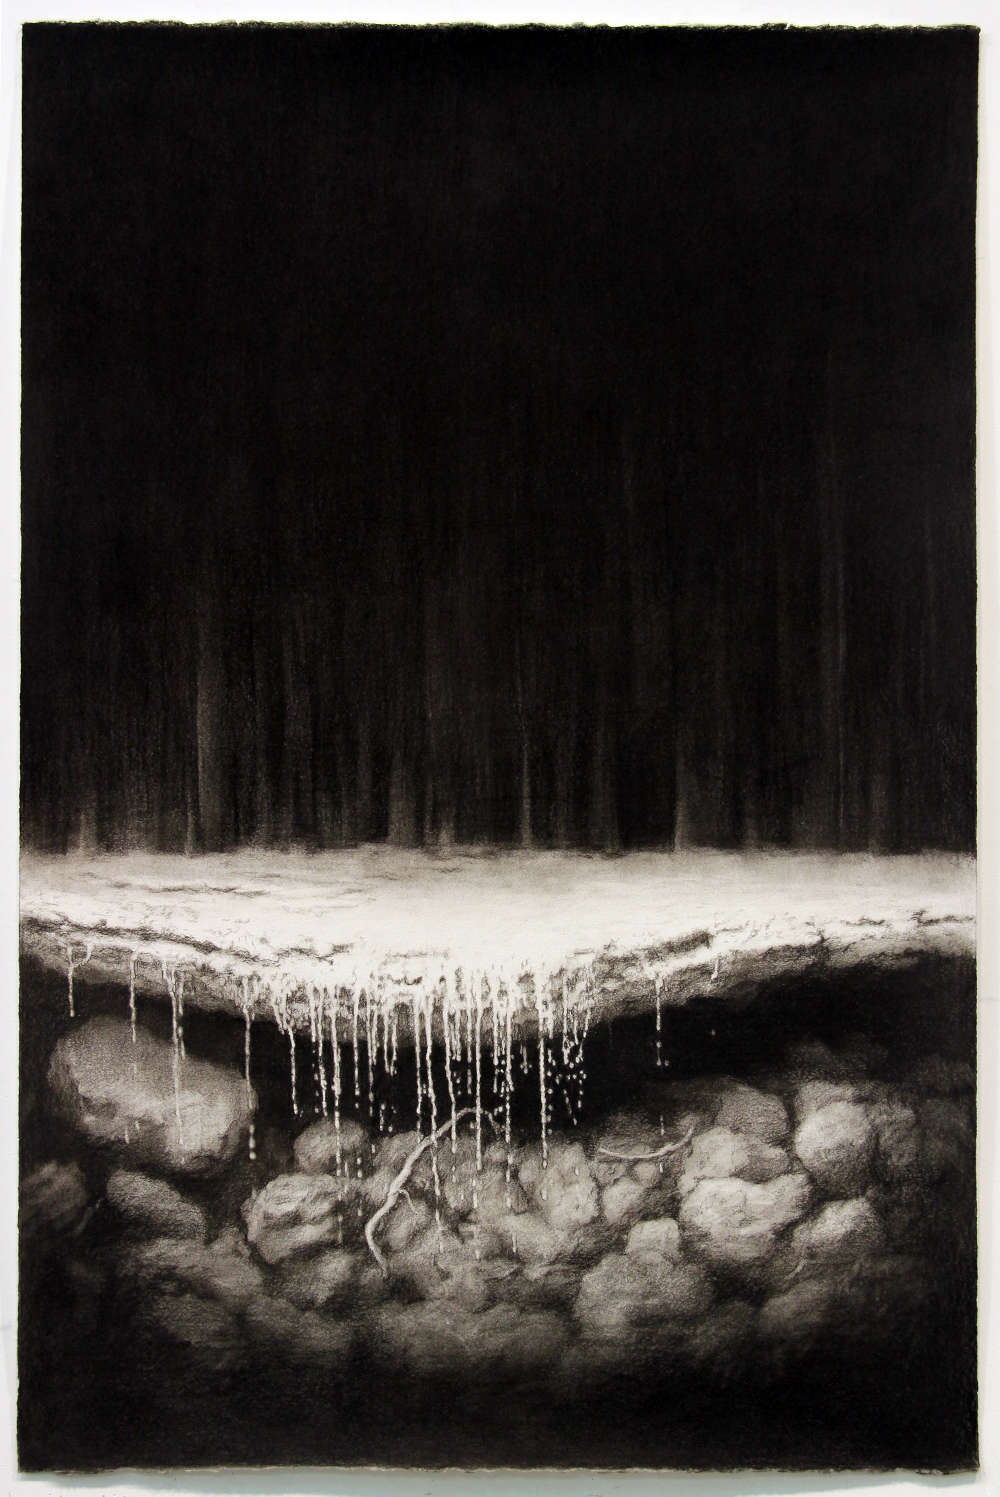 Andrew Browne, Study after Fall #2, 2018. Charcoal on paper 80.2 x 121 cm